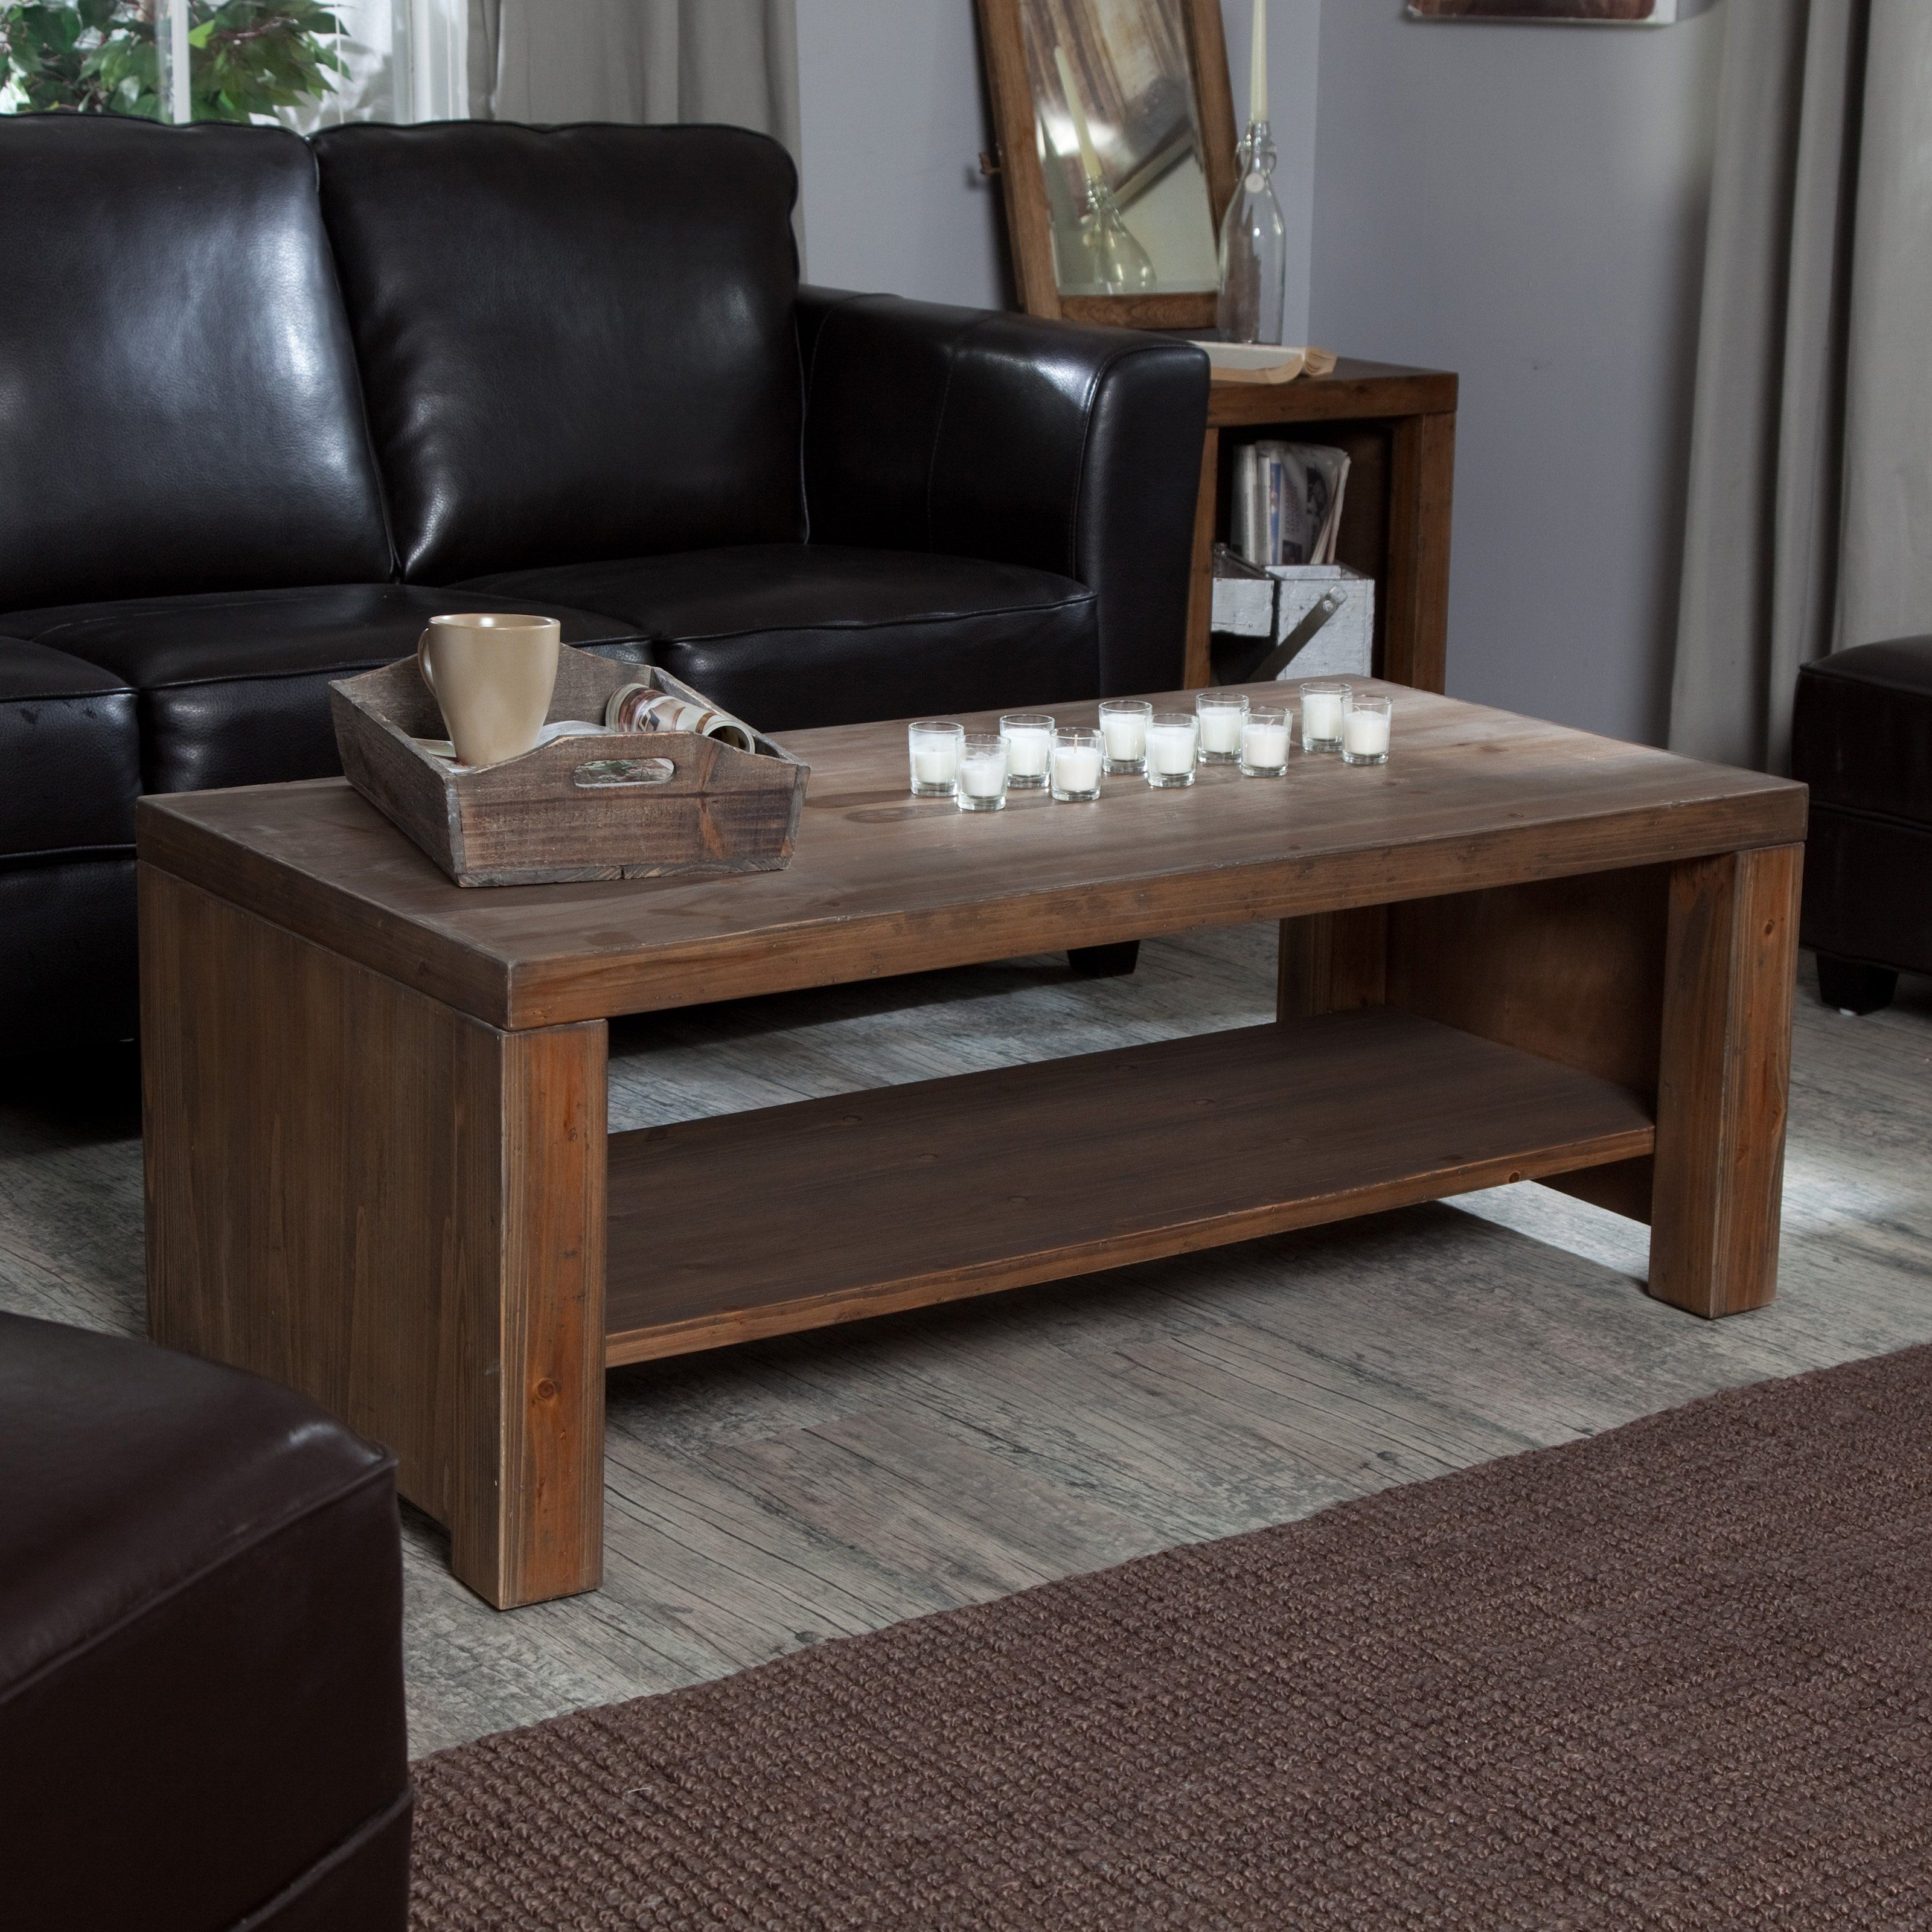 Have To Have It Brinfield Rustic Solid Wood Coffee Table 169 98 Rustic Is In Though This Might Be Solid Wood Coffee Table Coffee Table Coffee Table Design [ 3200 x 3200 Pixel ]